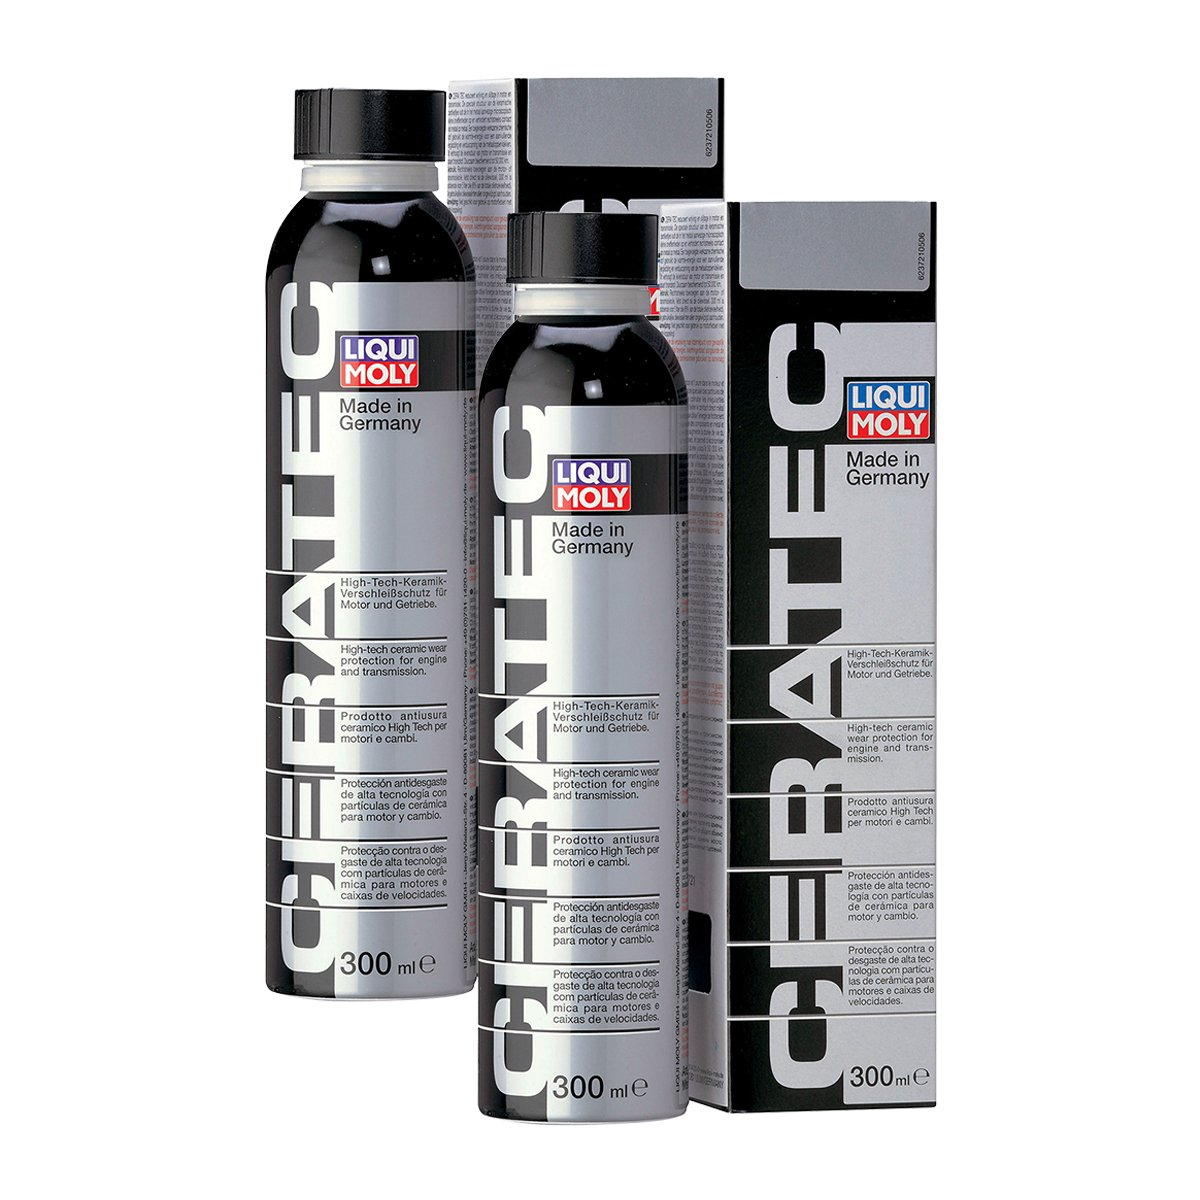 2 x Liqui Moly CERATEC 300 ml - Additivo per olio